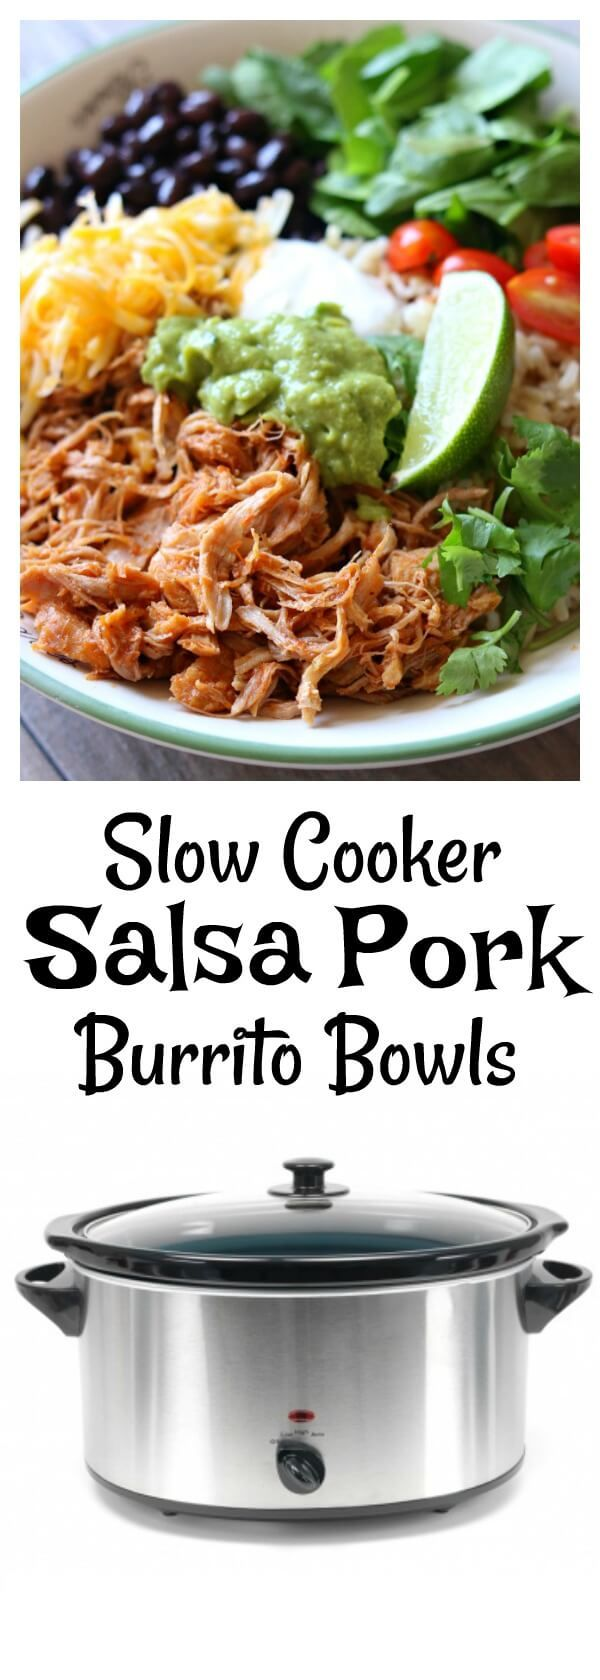 Slow Cooker Savory Pork Burrito Bowls–perfectly tender and shreddable 5 ingredient pork is cooked all day on low in your crockpot and then served with rice, guacamole, black beans, sour cream and more of your favorite toppings.